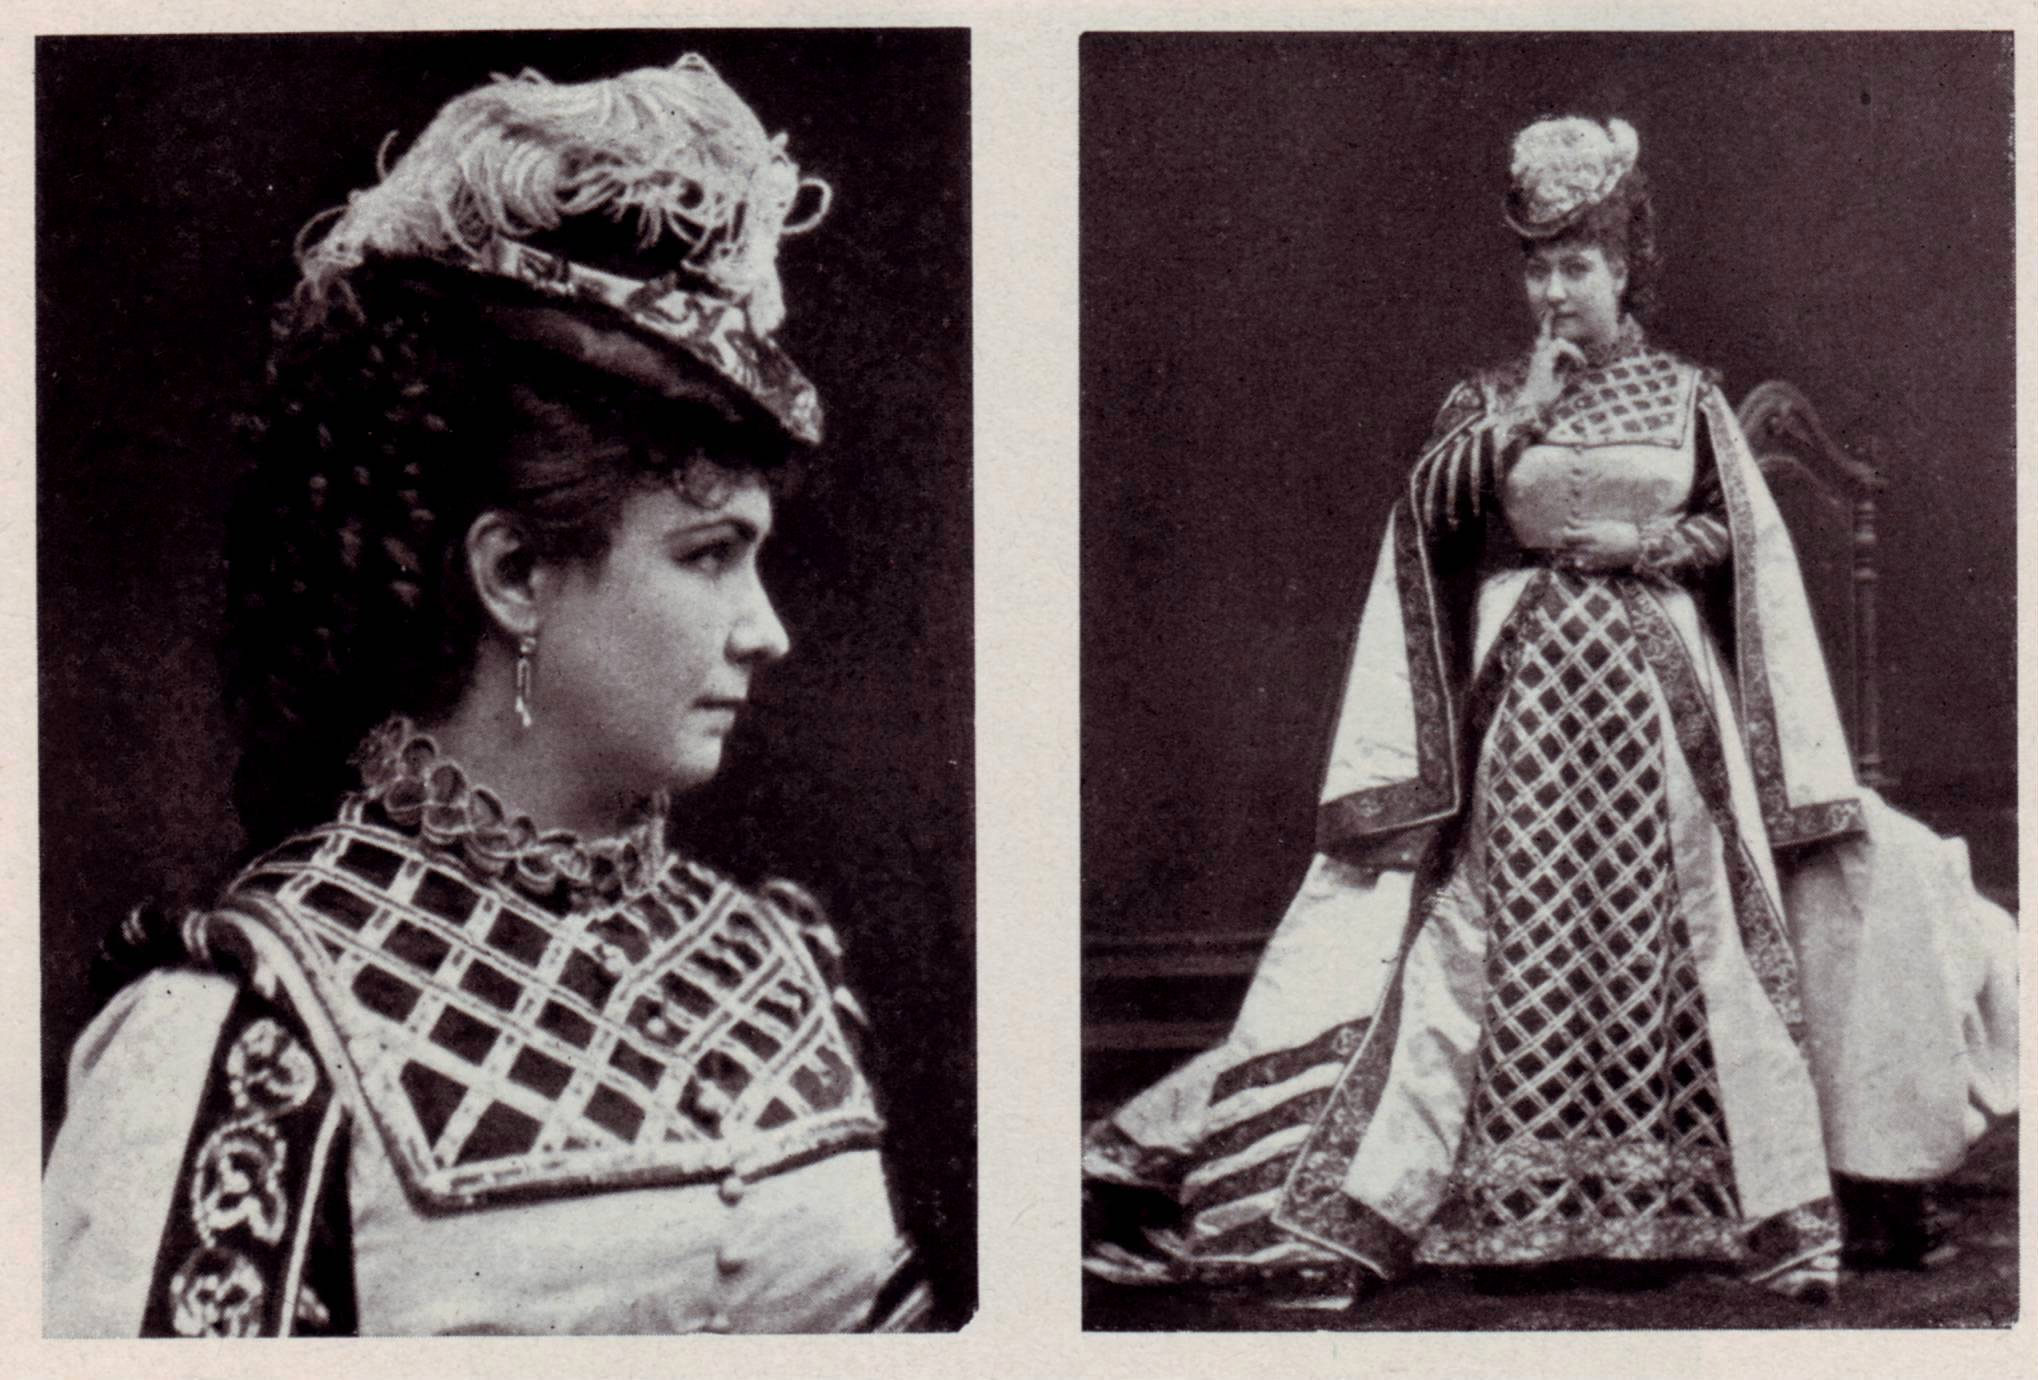 The Viennese diva Marie Geistinger as the first Austrian Boulotte.